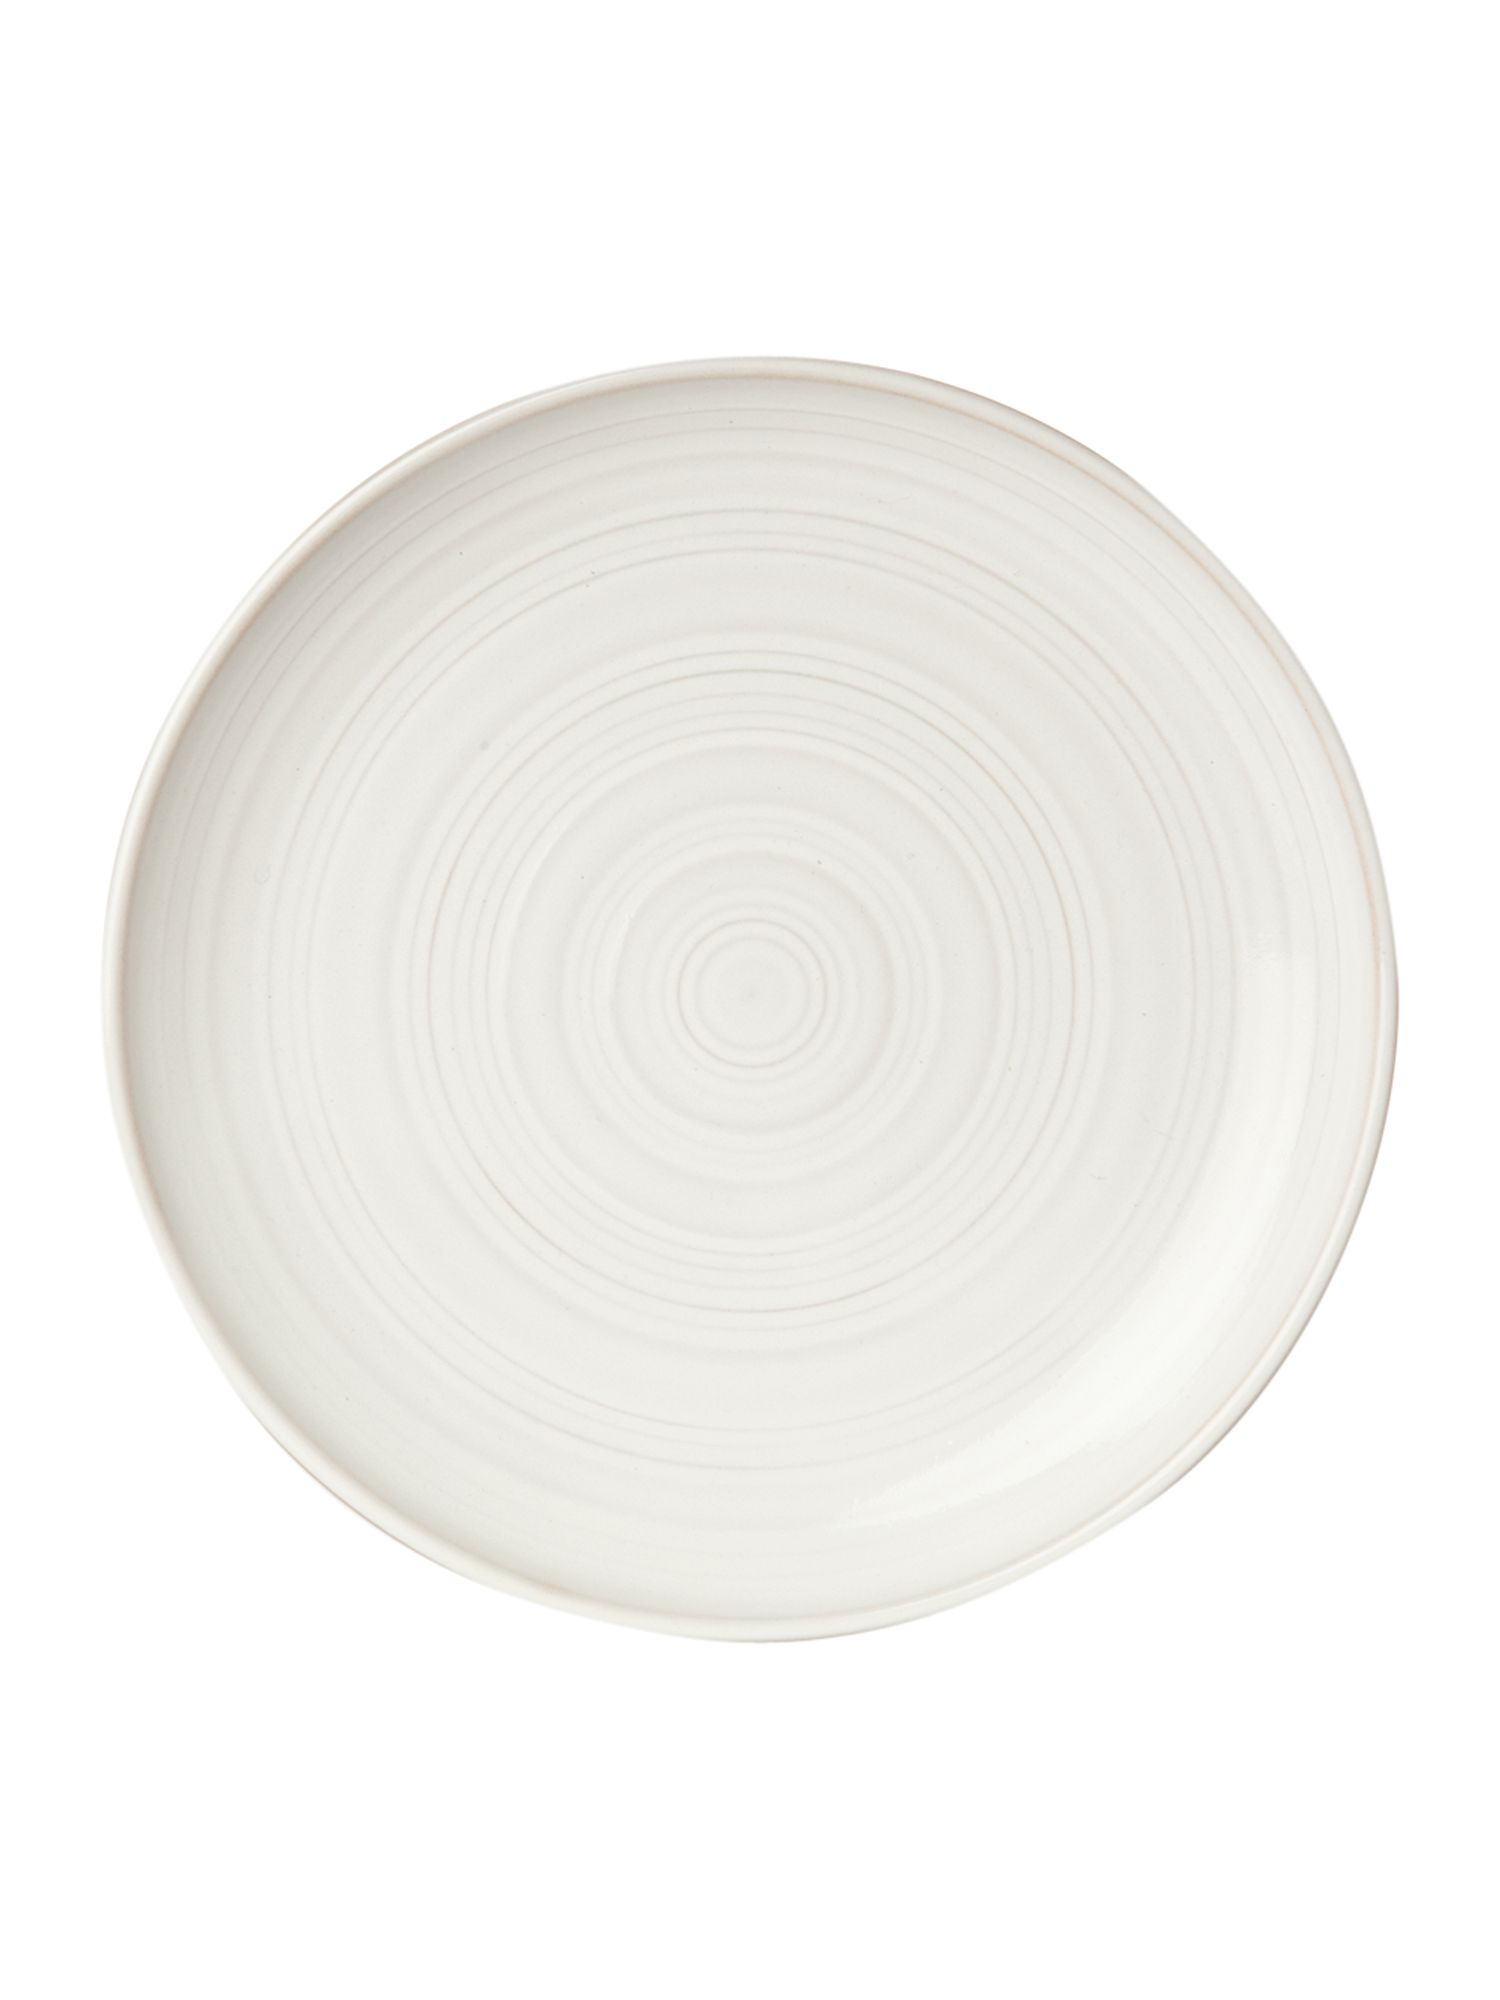 Echo white side plate